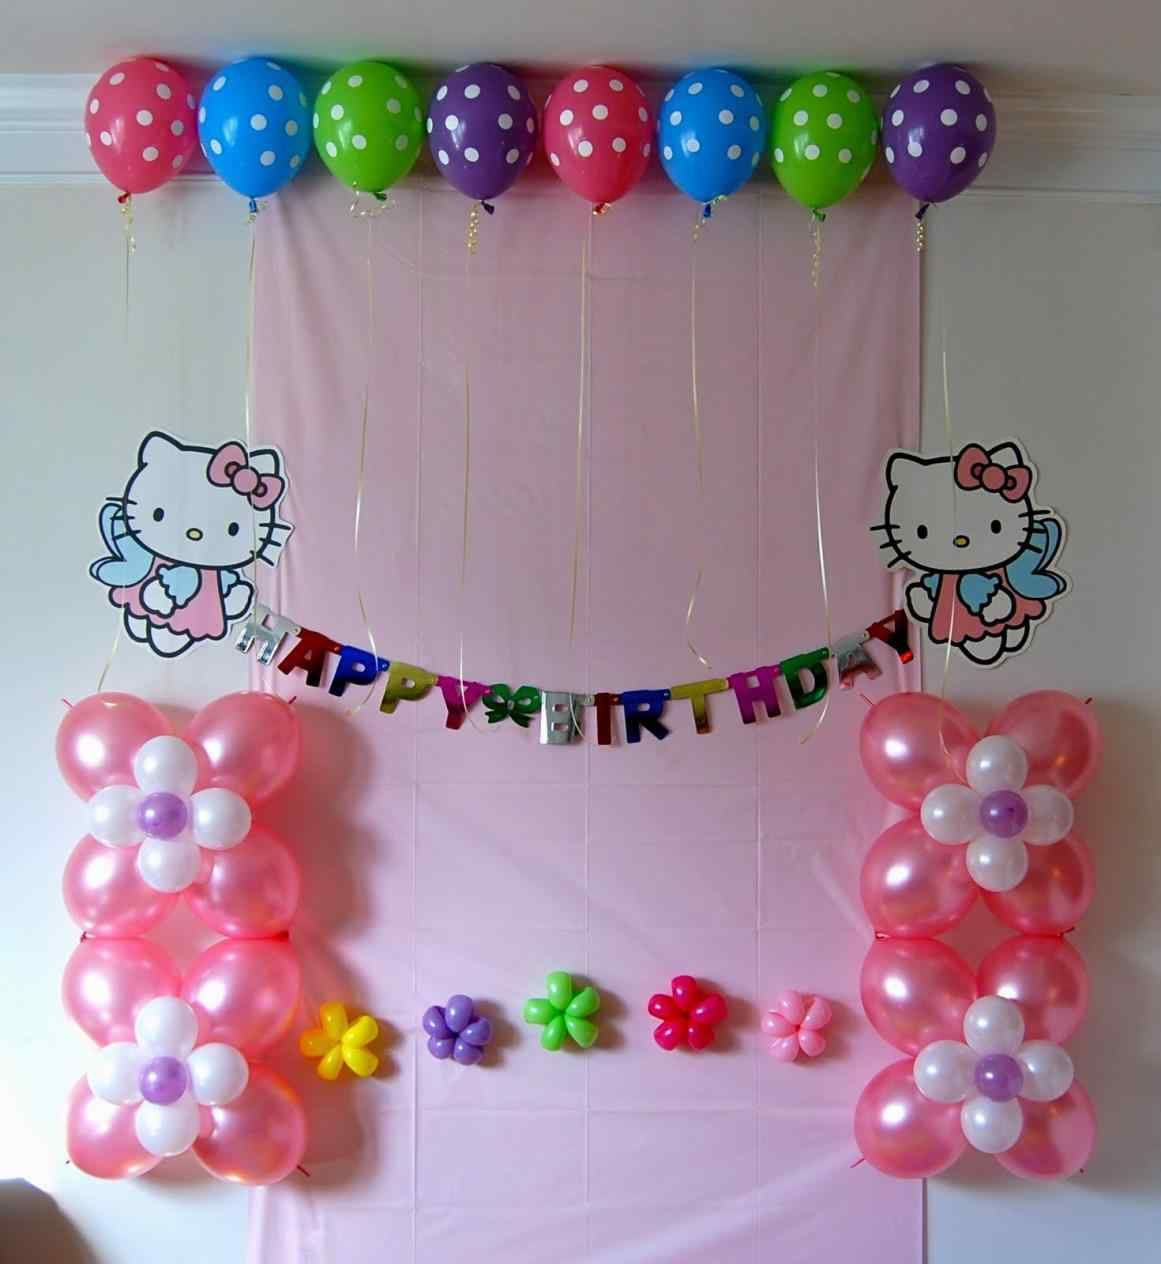 New post birthday room decoration for friend has been published on